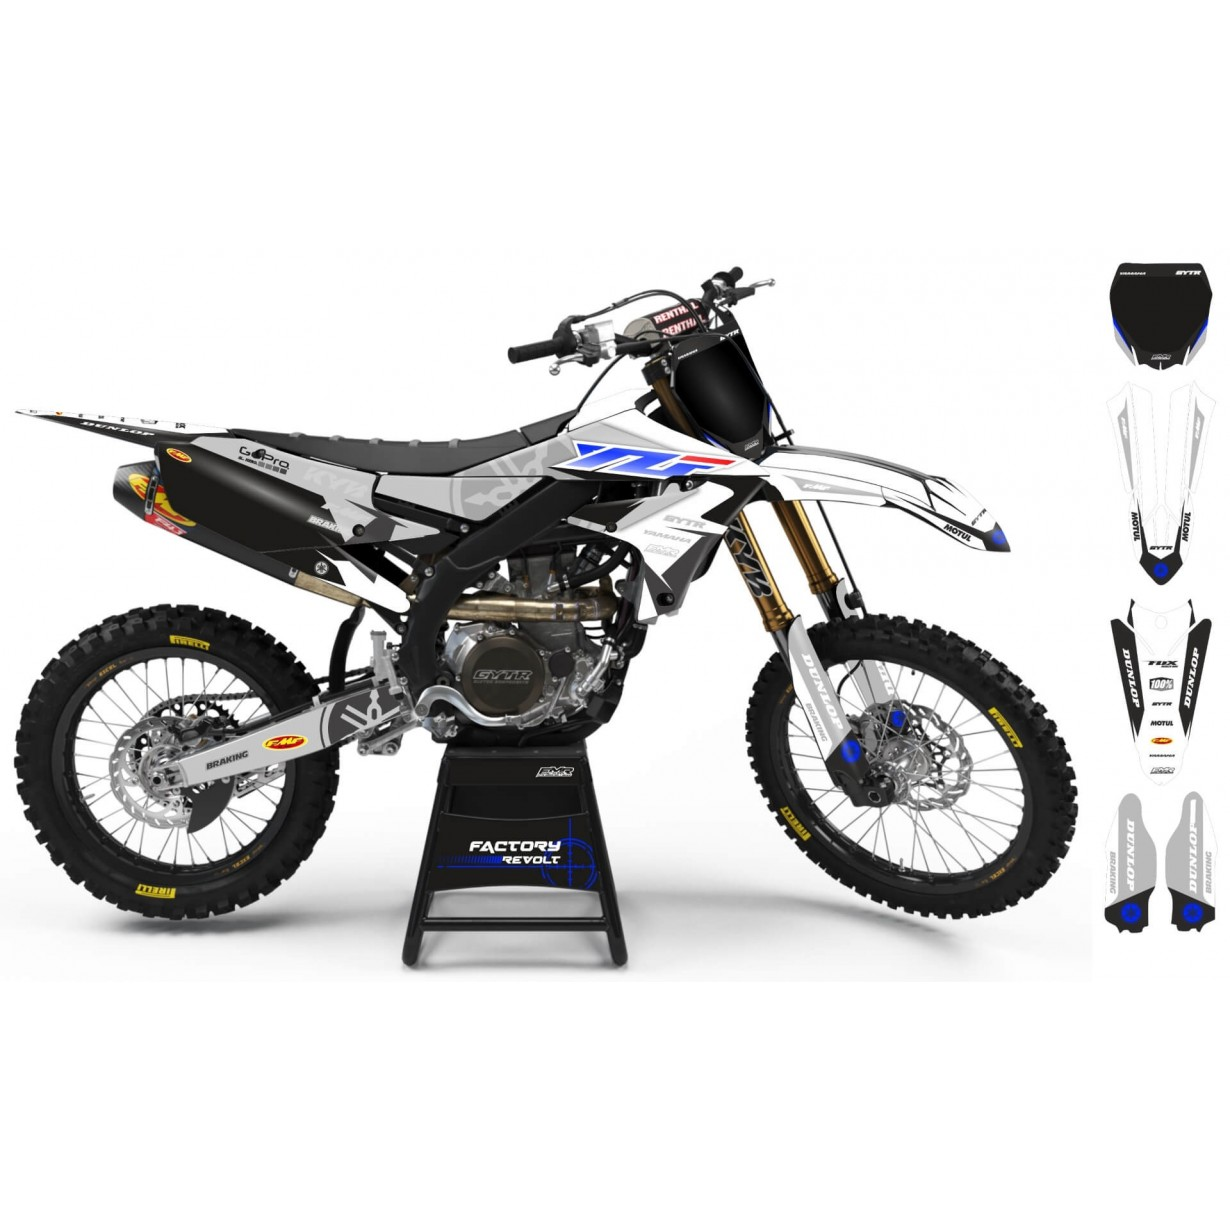 Kit déco Perso YAMAHA Factory Revolt A26E1 white/grey